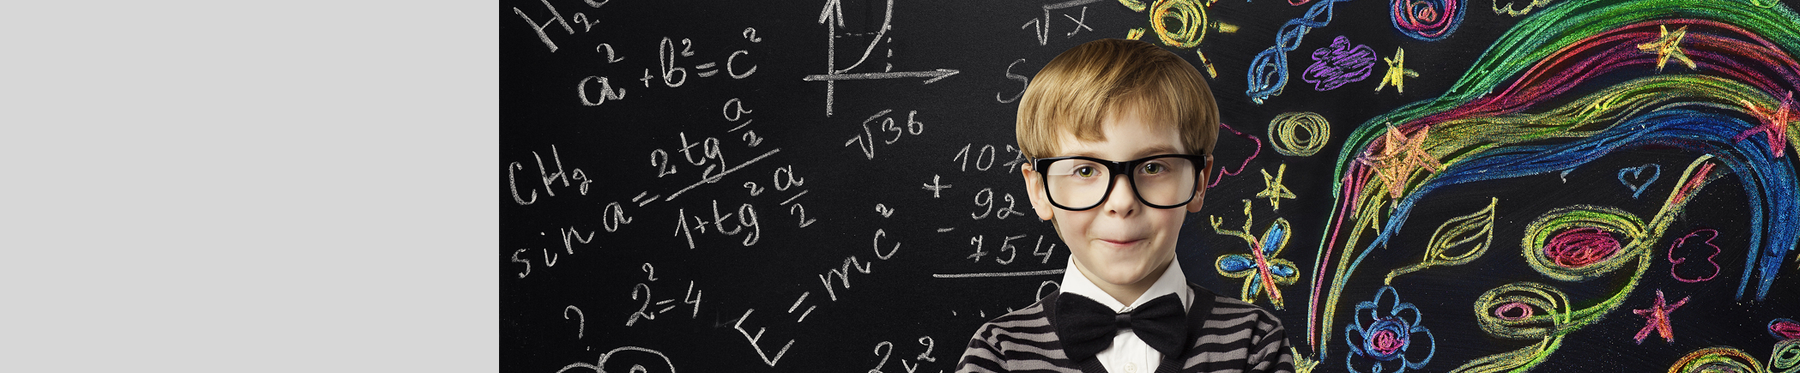 Boy with Math on Chalkboard